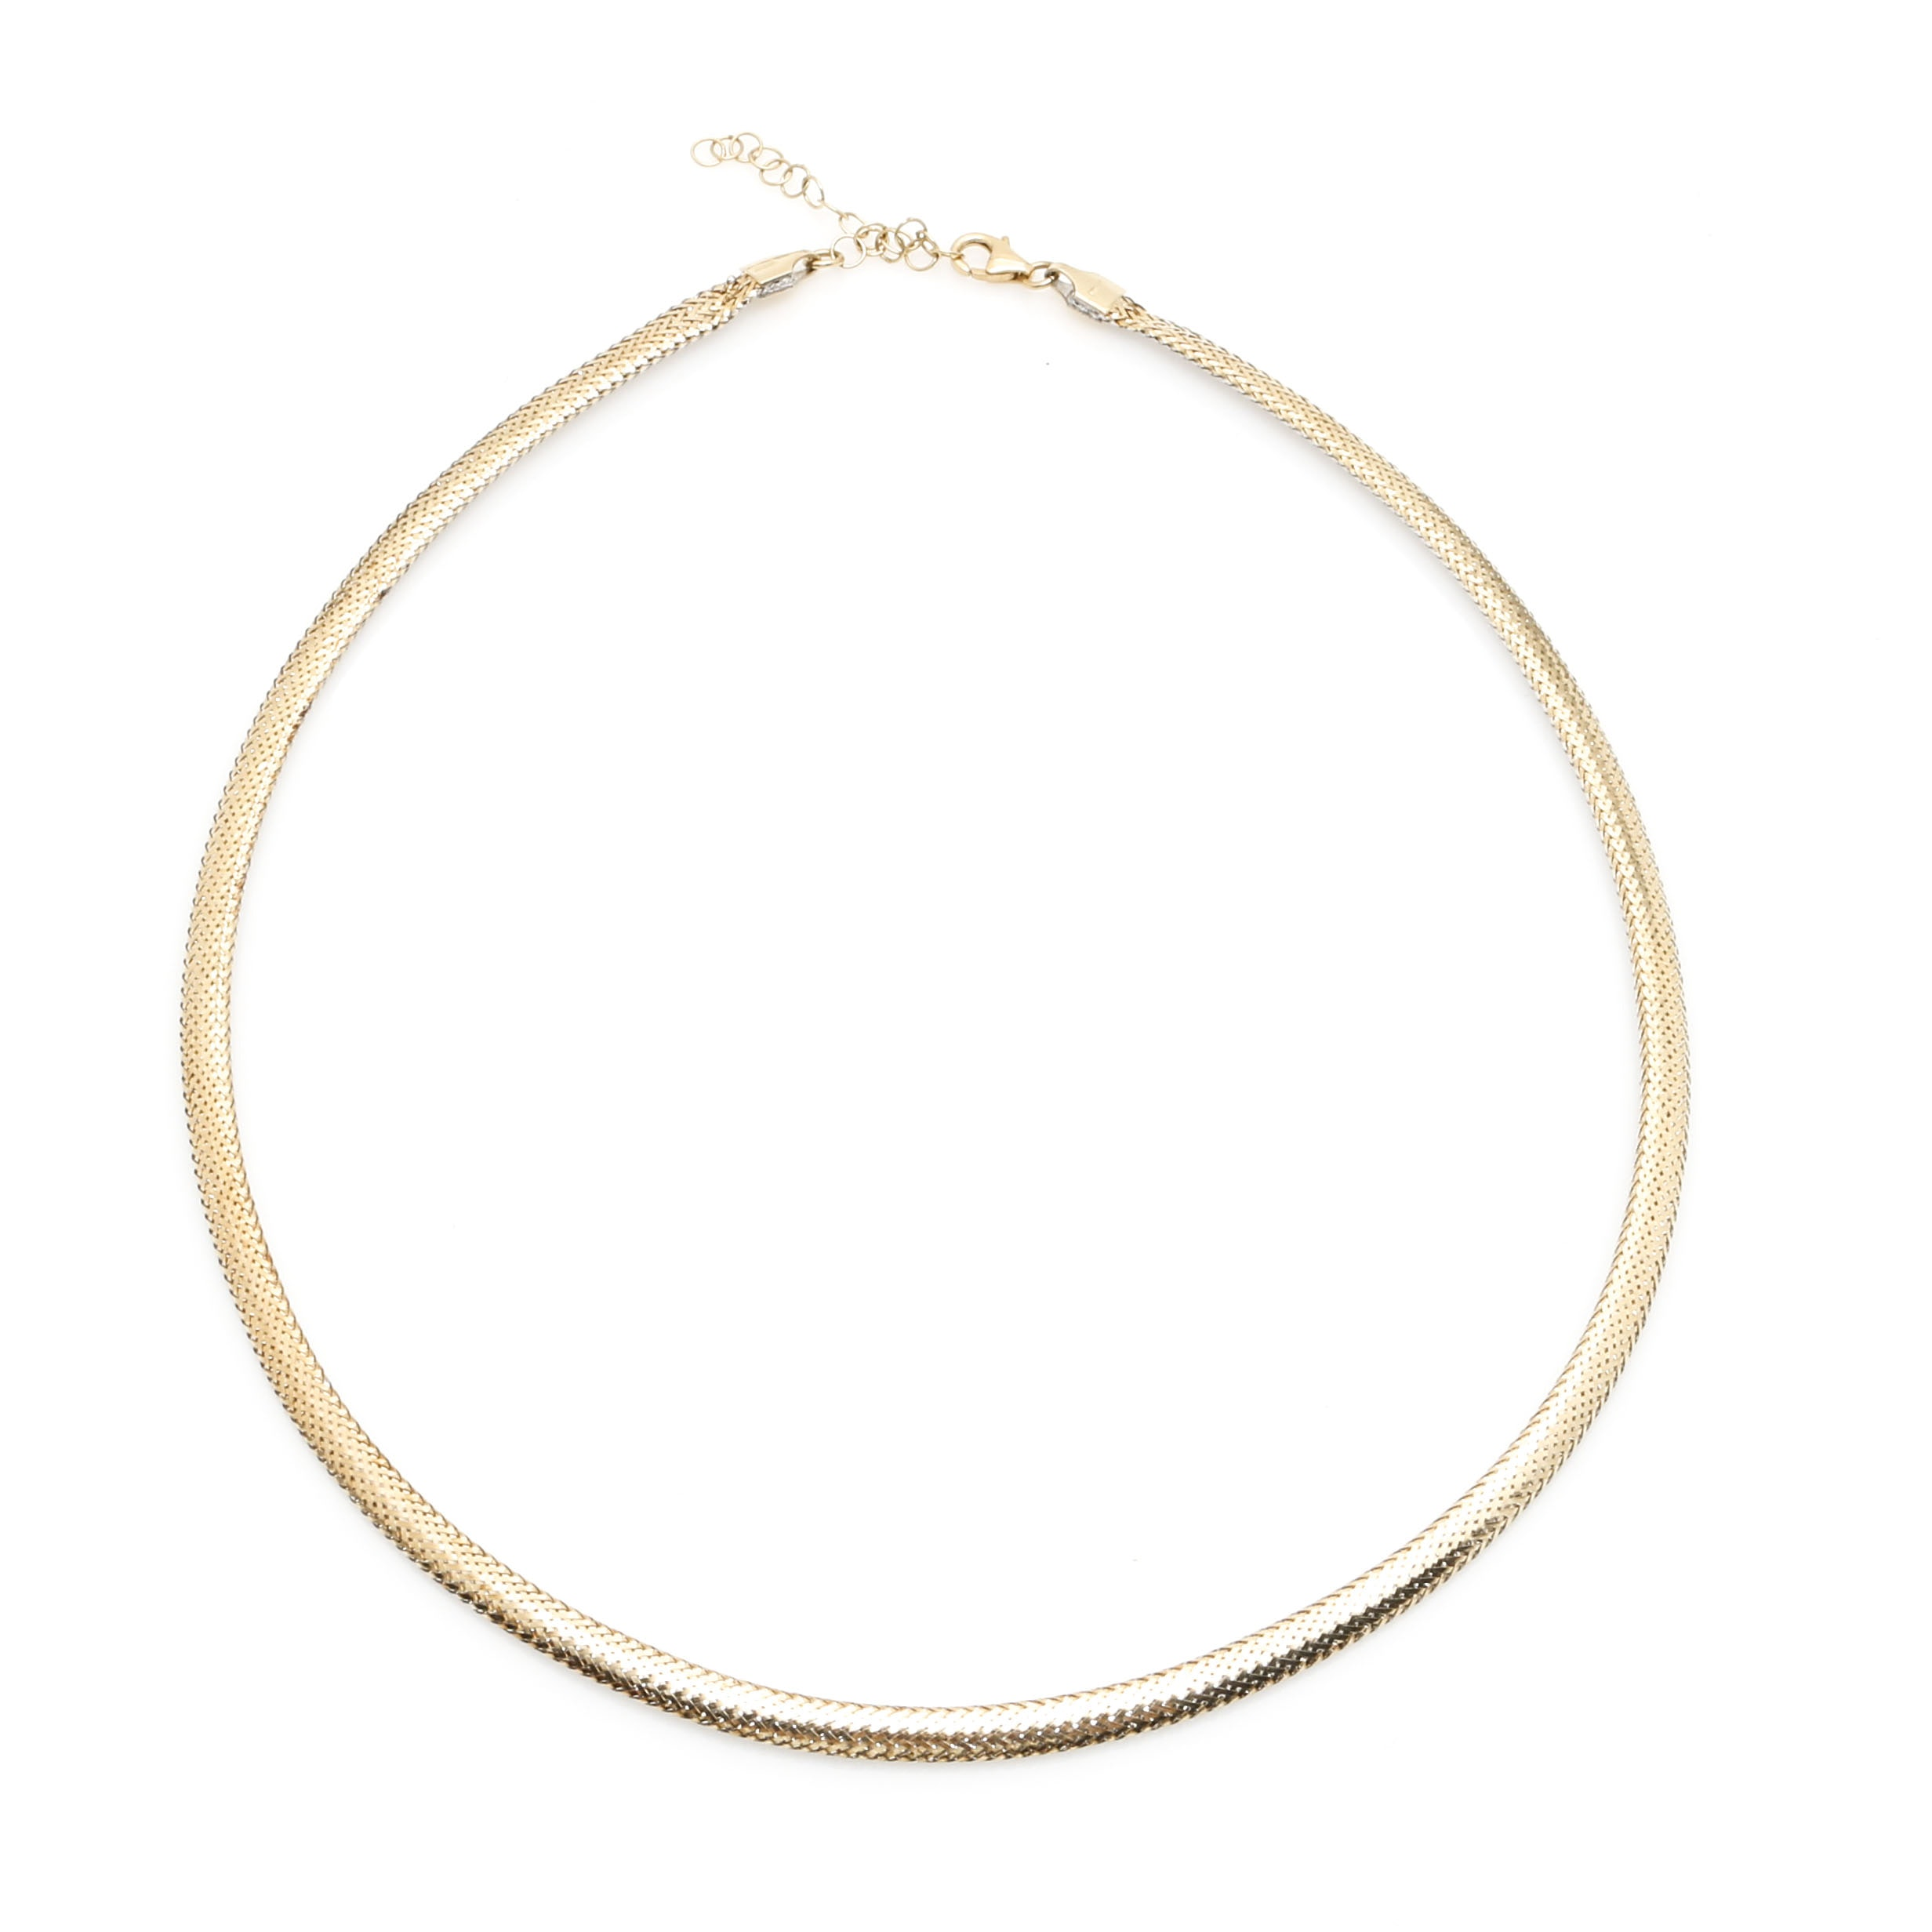 14K Yellow and White Gold Reversible Omega Necklace